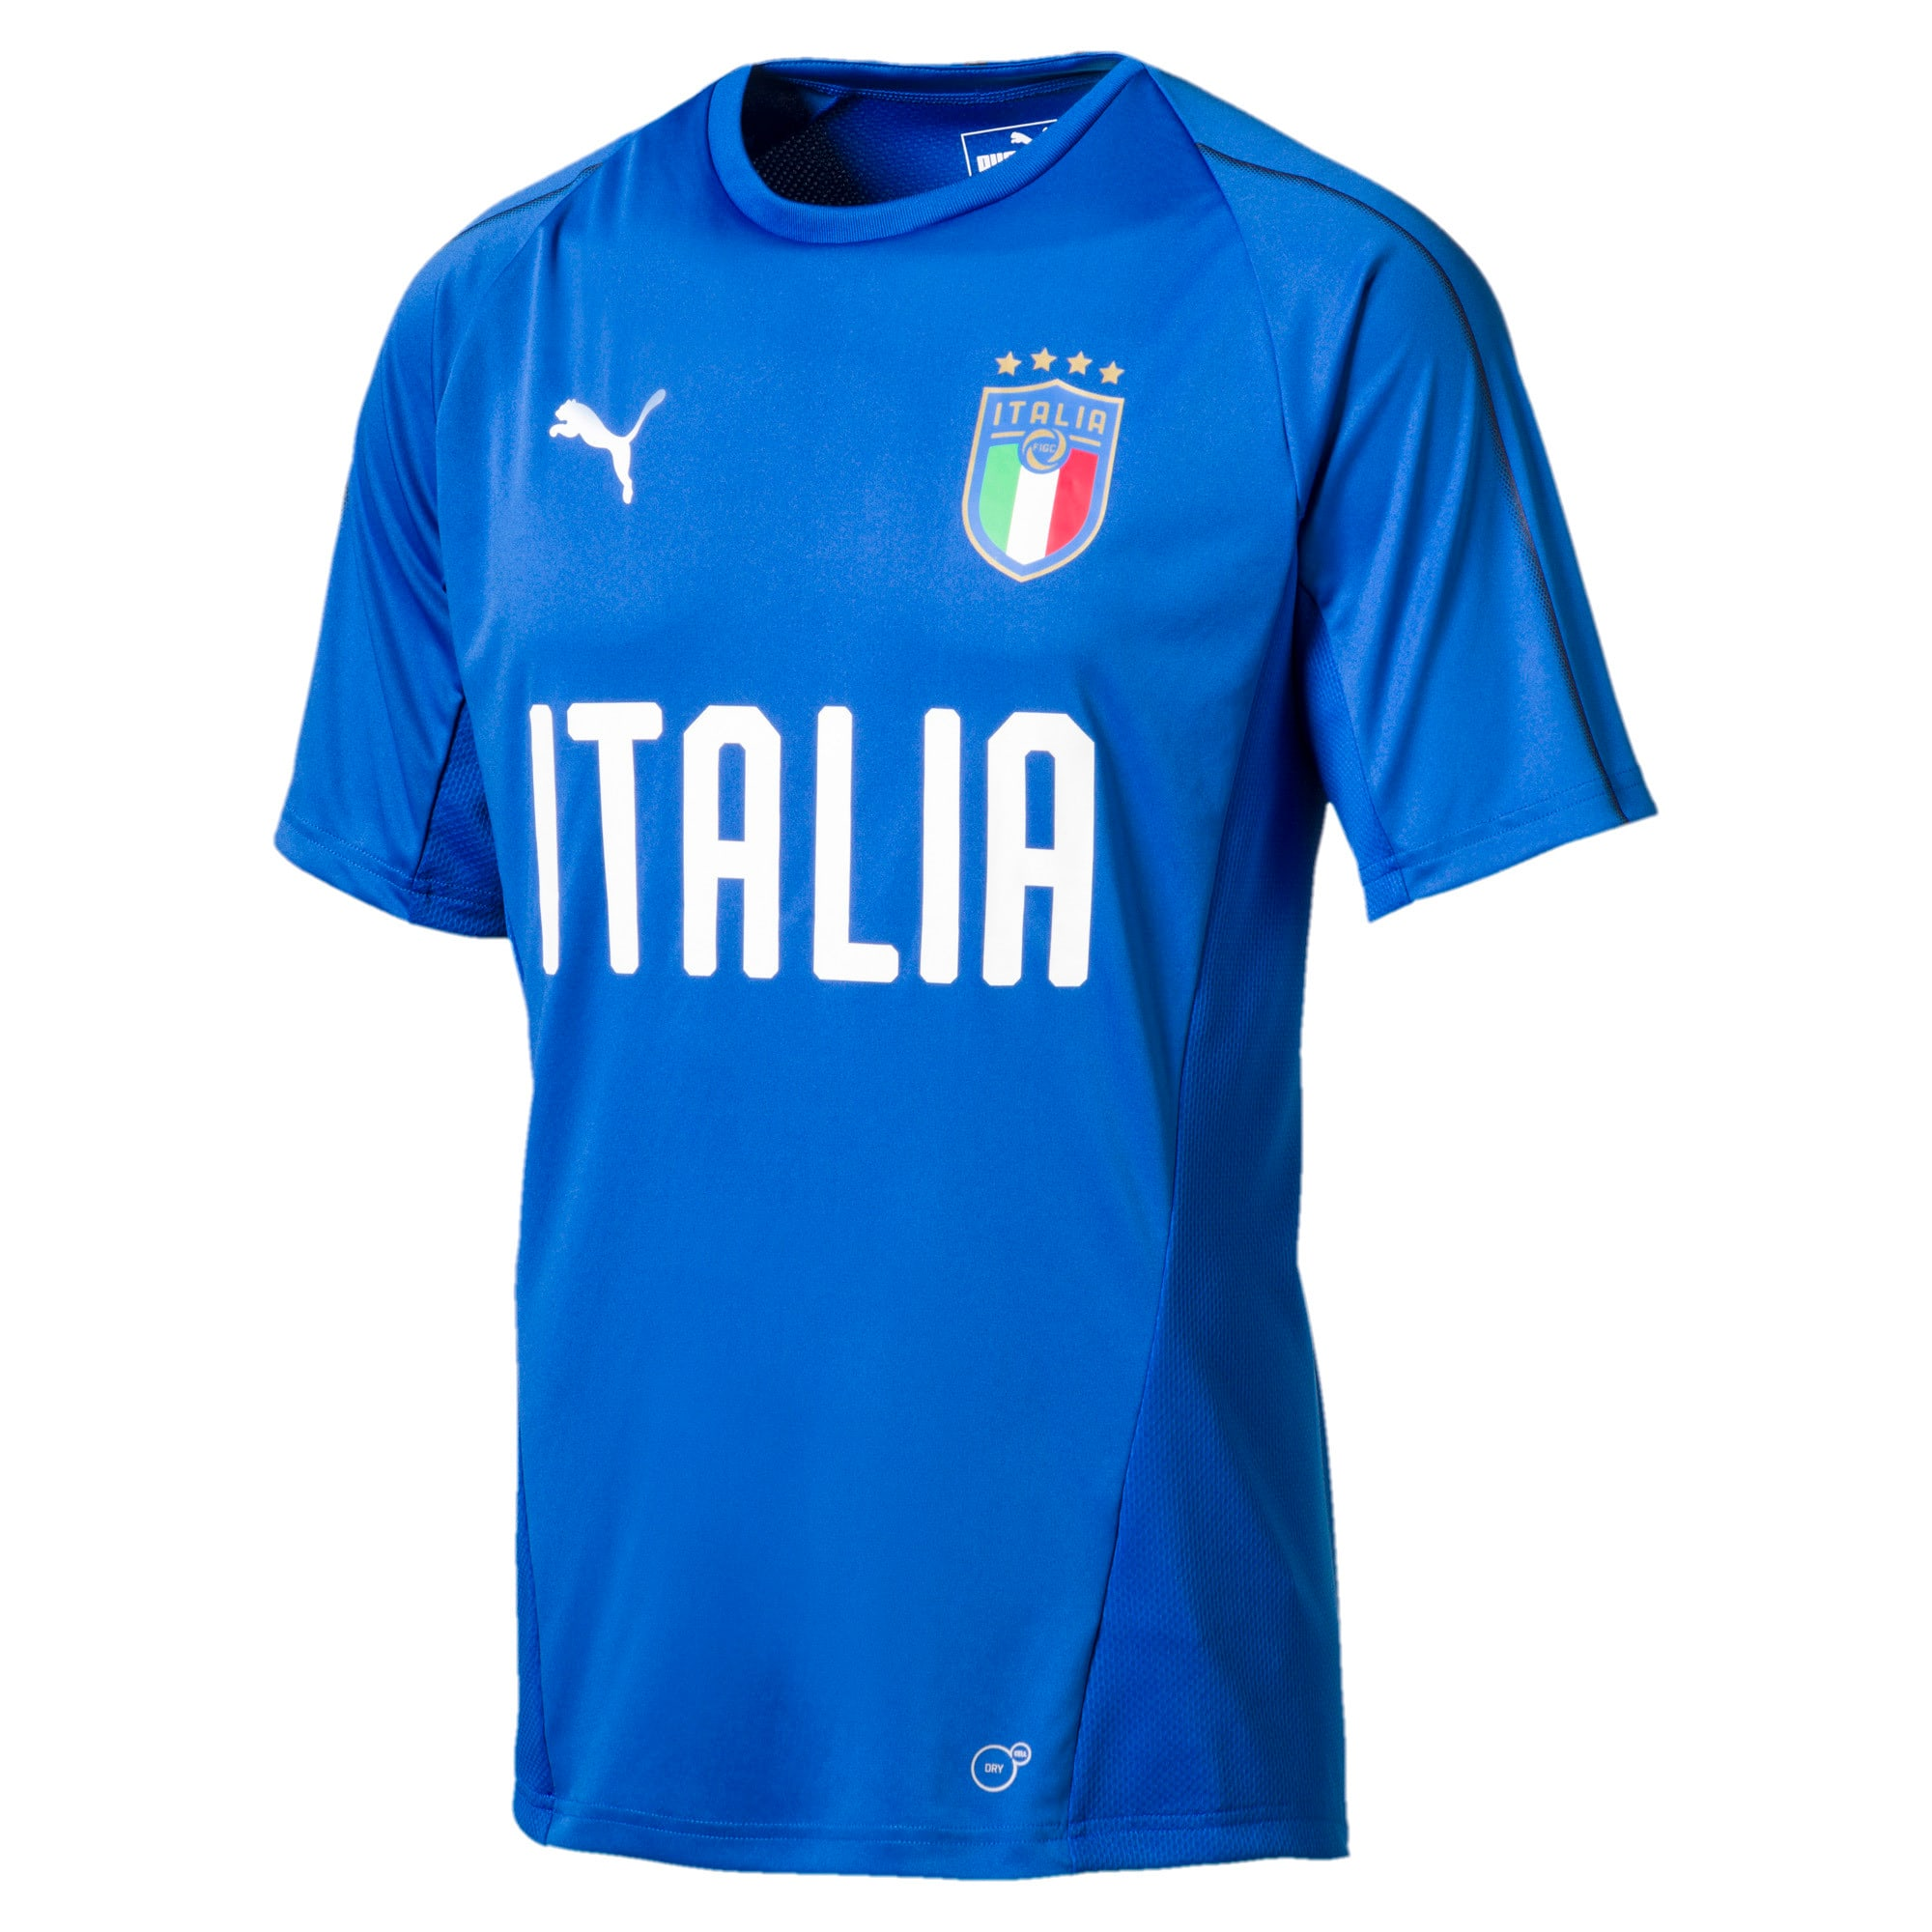 Thumbnail 1 of Italia Trainingstrikot, Team Power Blue-Puma White, medium